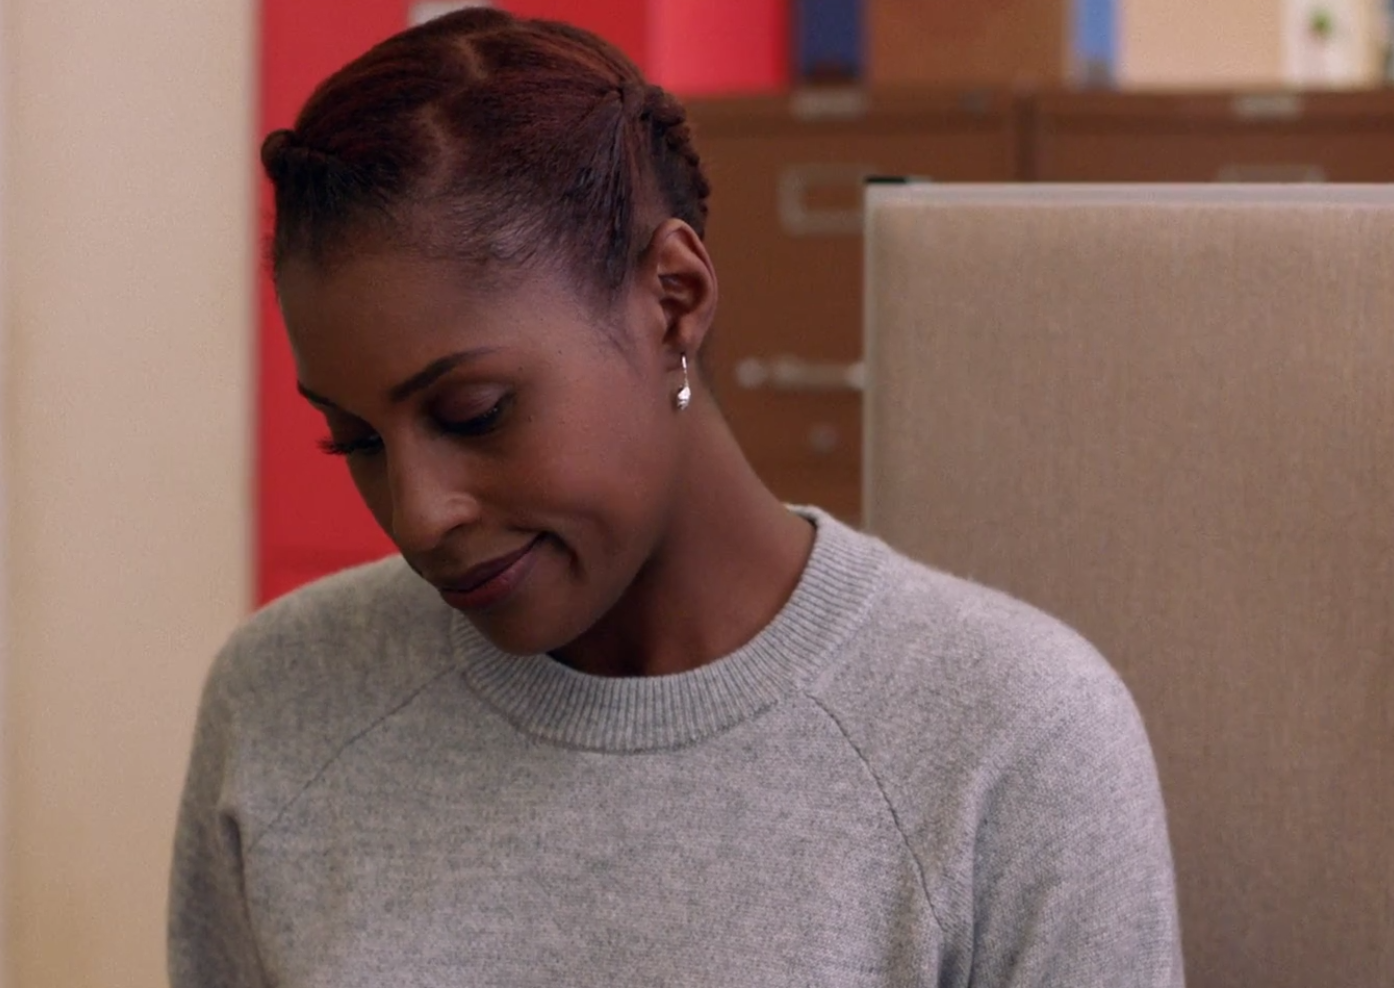 Flat Twists Zig Zag Part Issa Rae Wore on HBO Insecure Hella Disrespectful